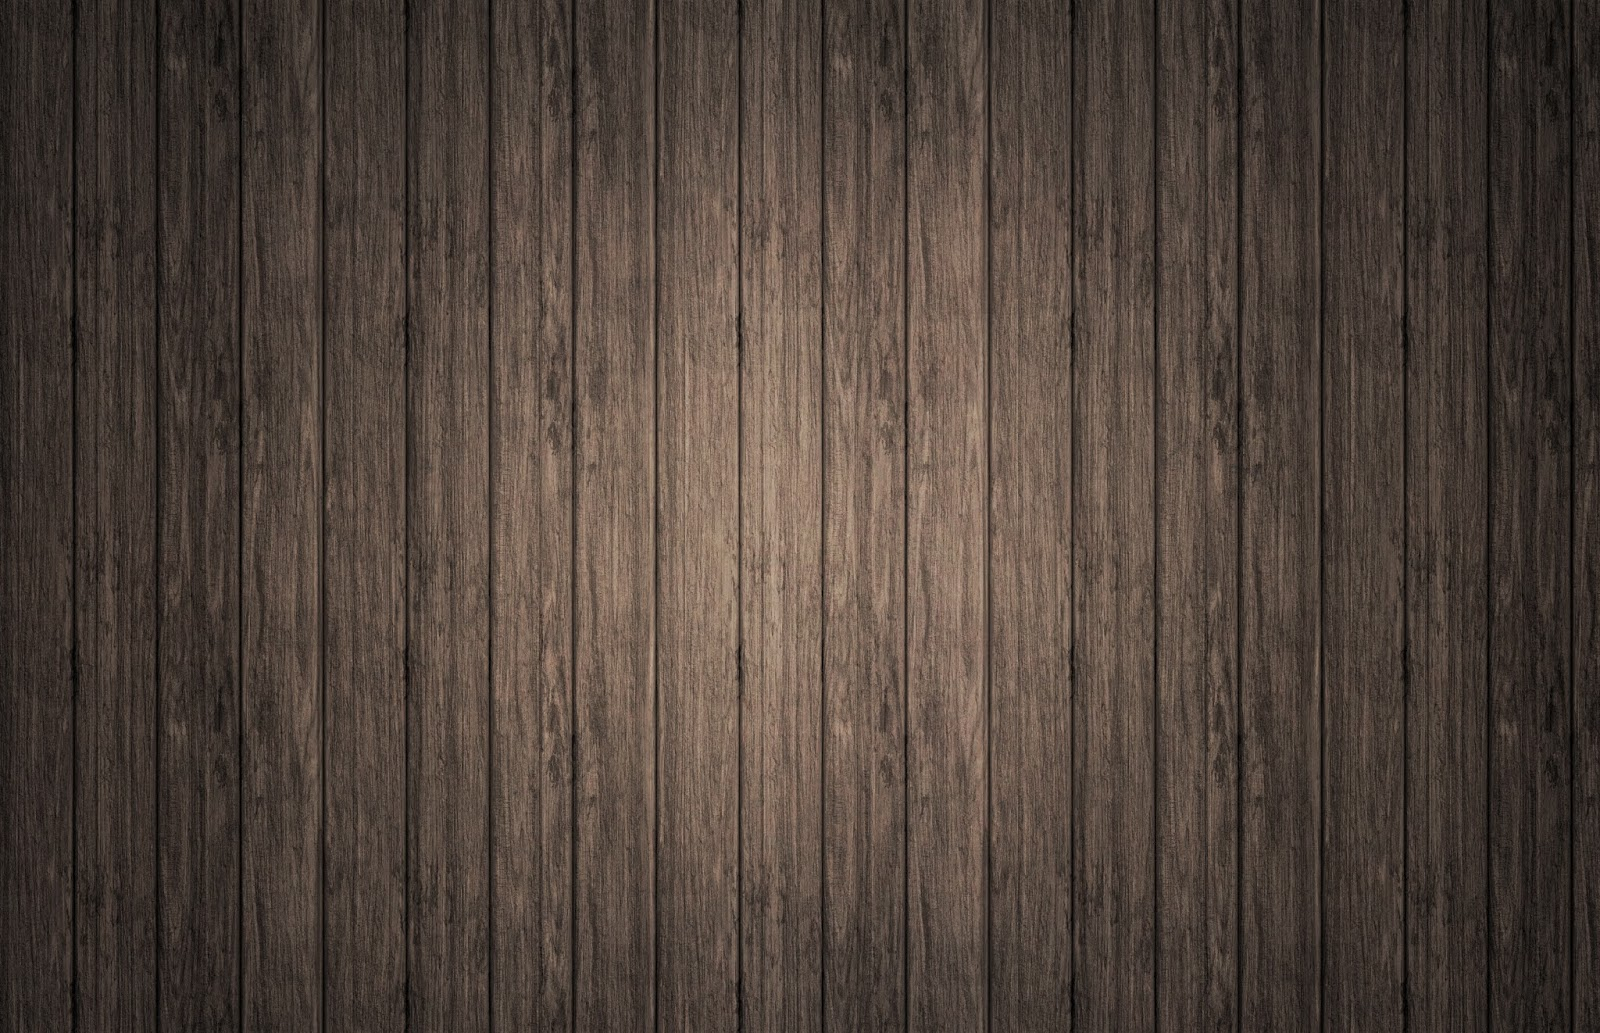 Wooden-background-texture-pattern-images-for-website-HD-template-PSD-free-download.jpg